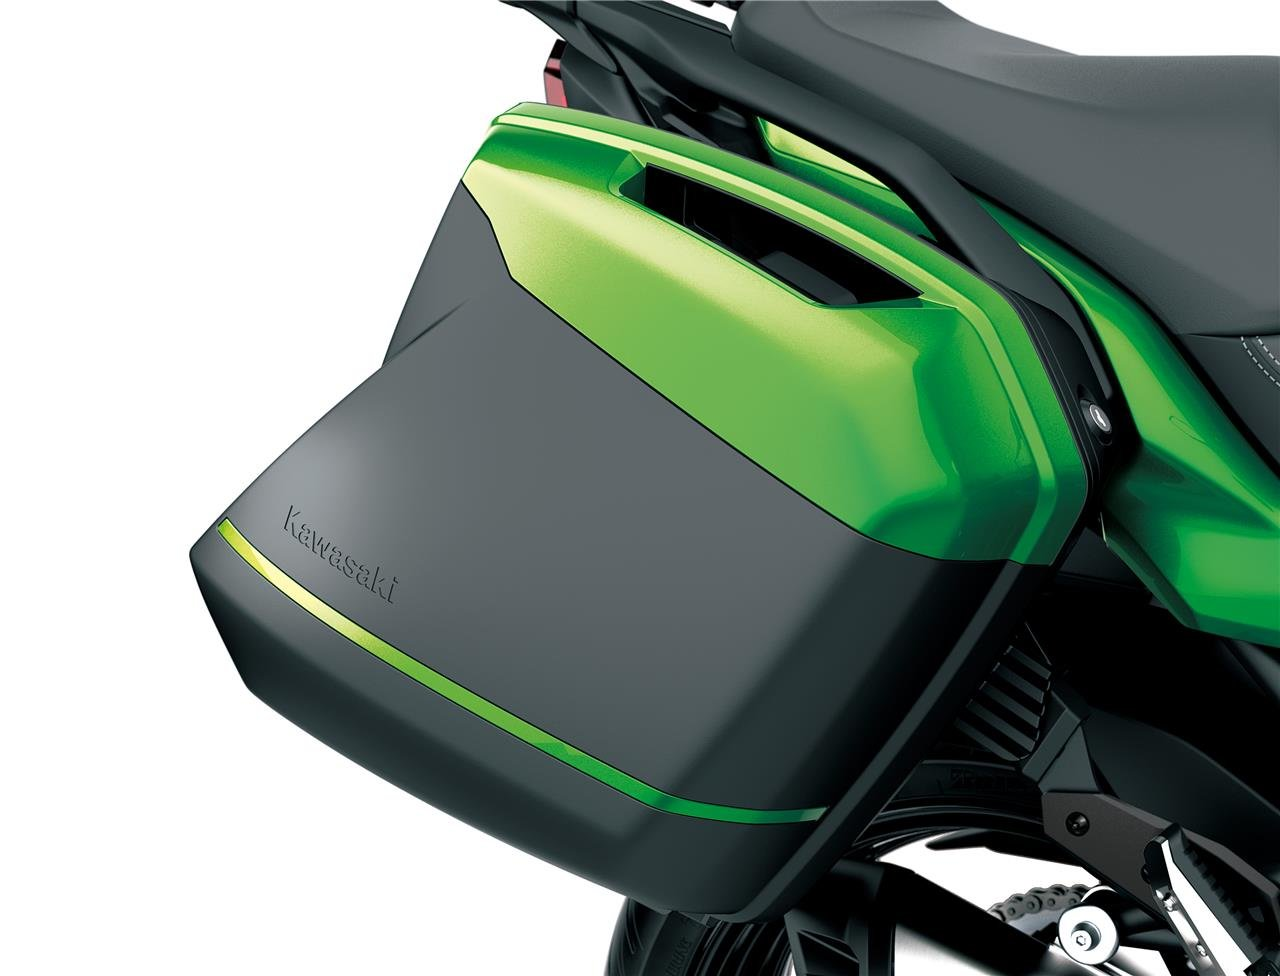 New 2020 Kawasaki Versys1000SE Tourer*£500 PAID & FREE Deliv For Sale (picture 3 of 6)